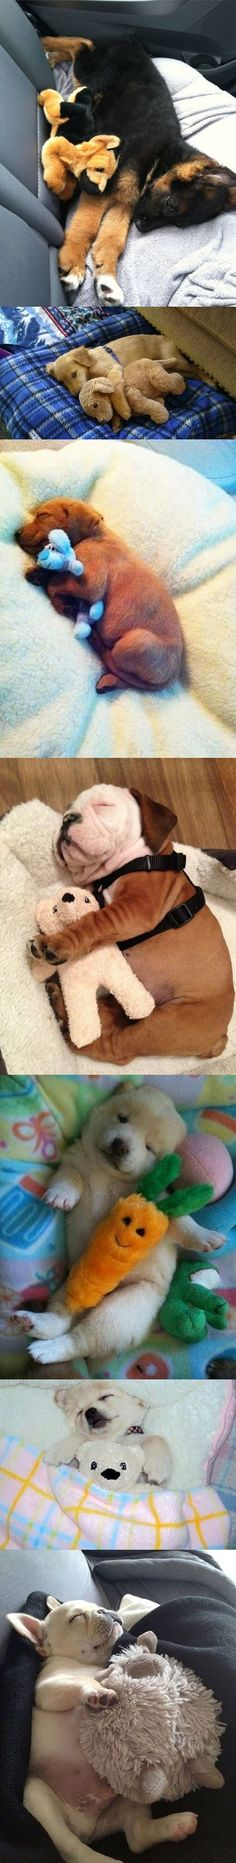 Puppies sleeping with stuffed animals.